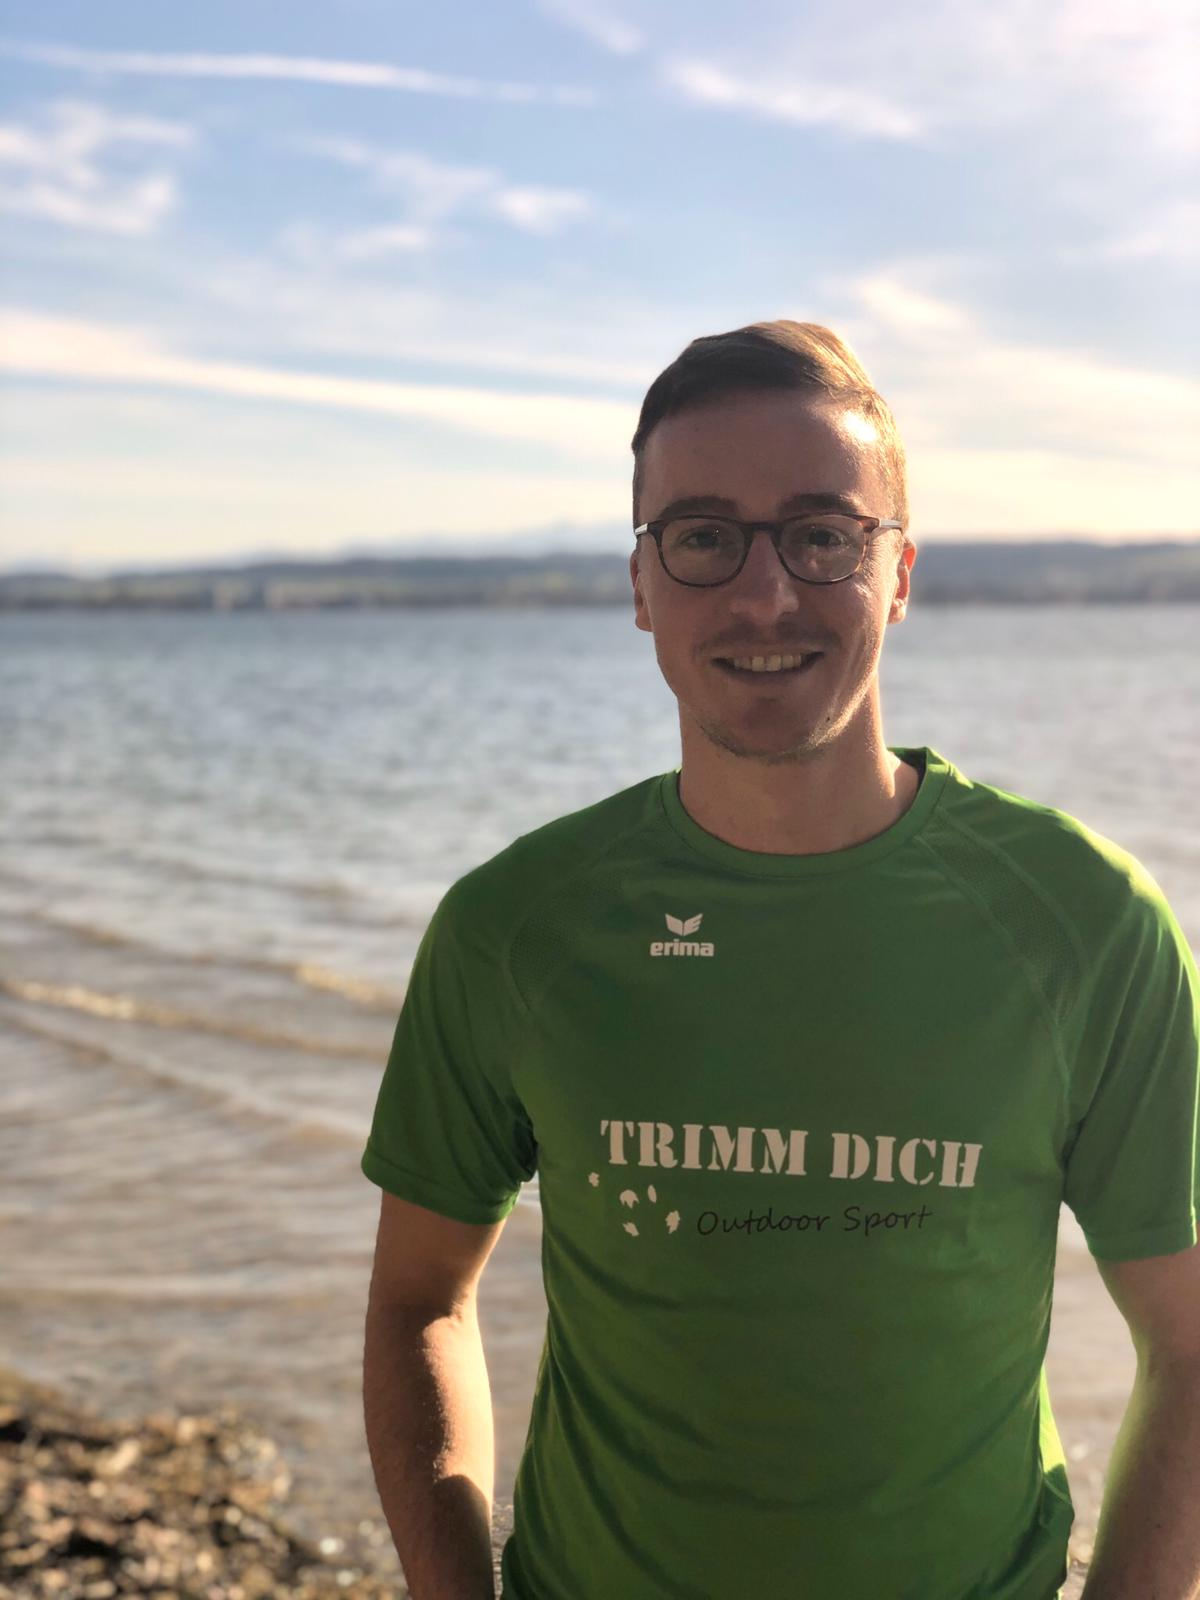 TRIMM DICH Outdoor Fitness Trainer Stefan